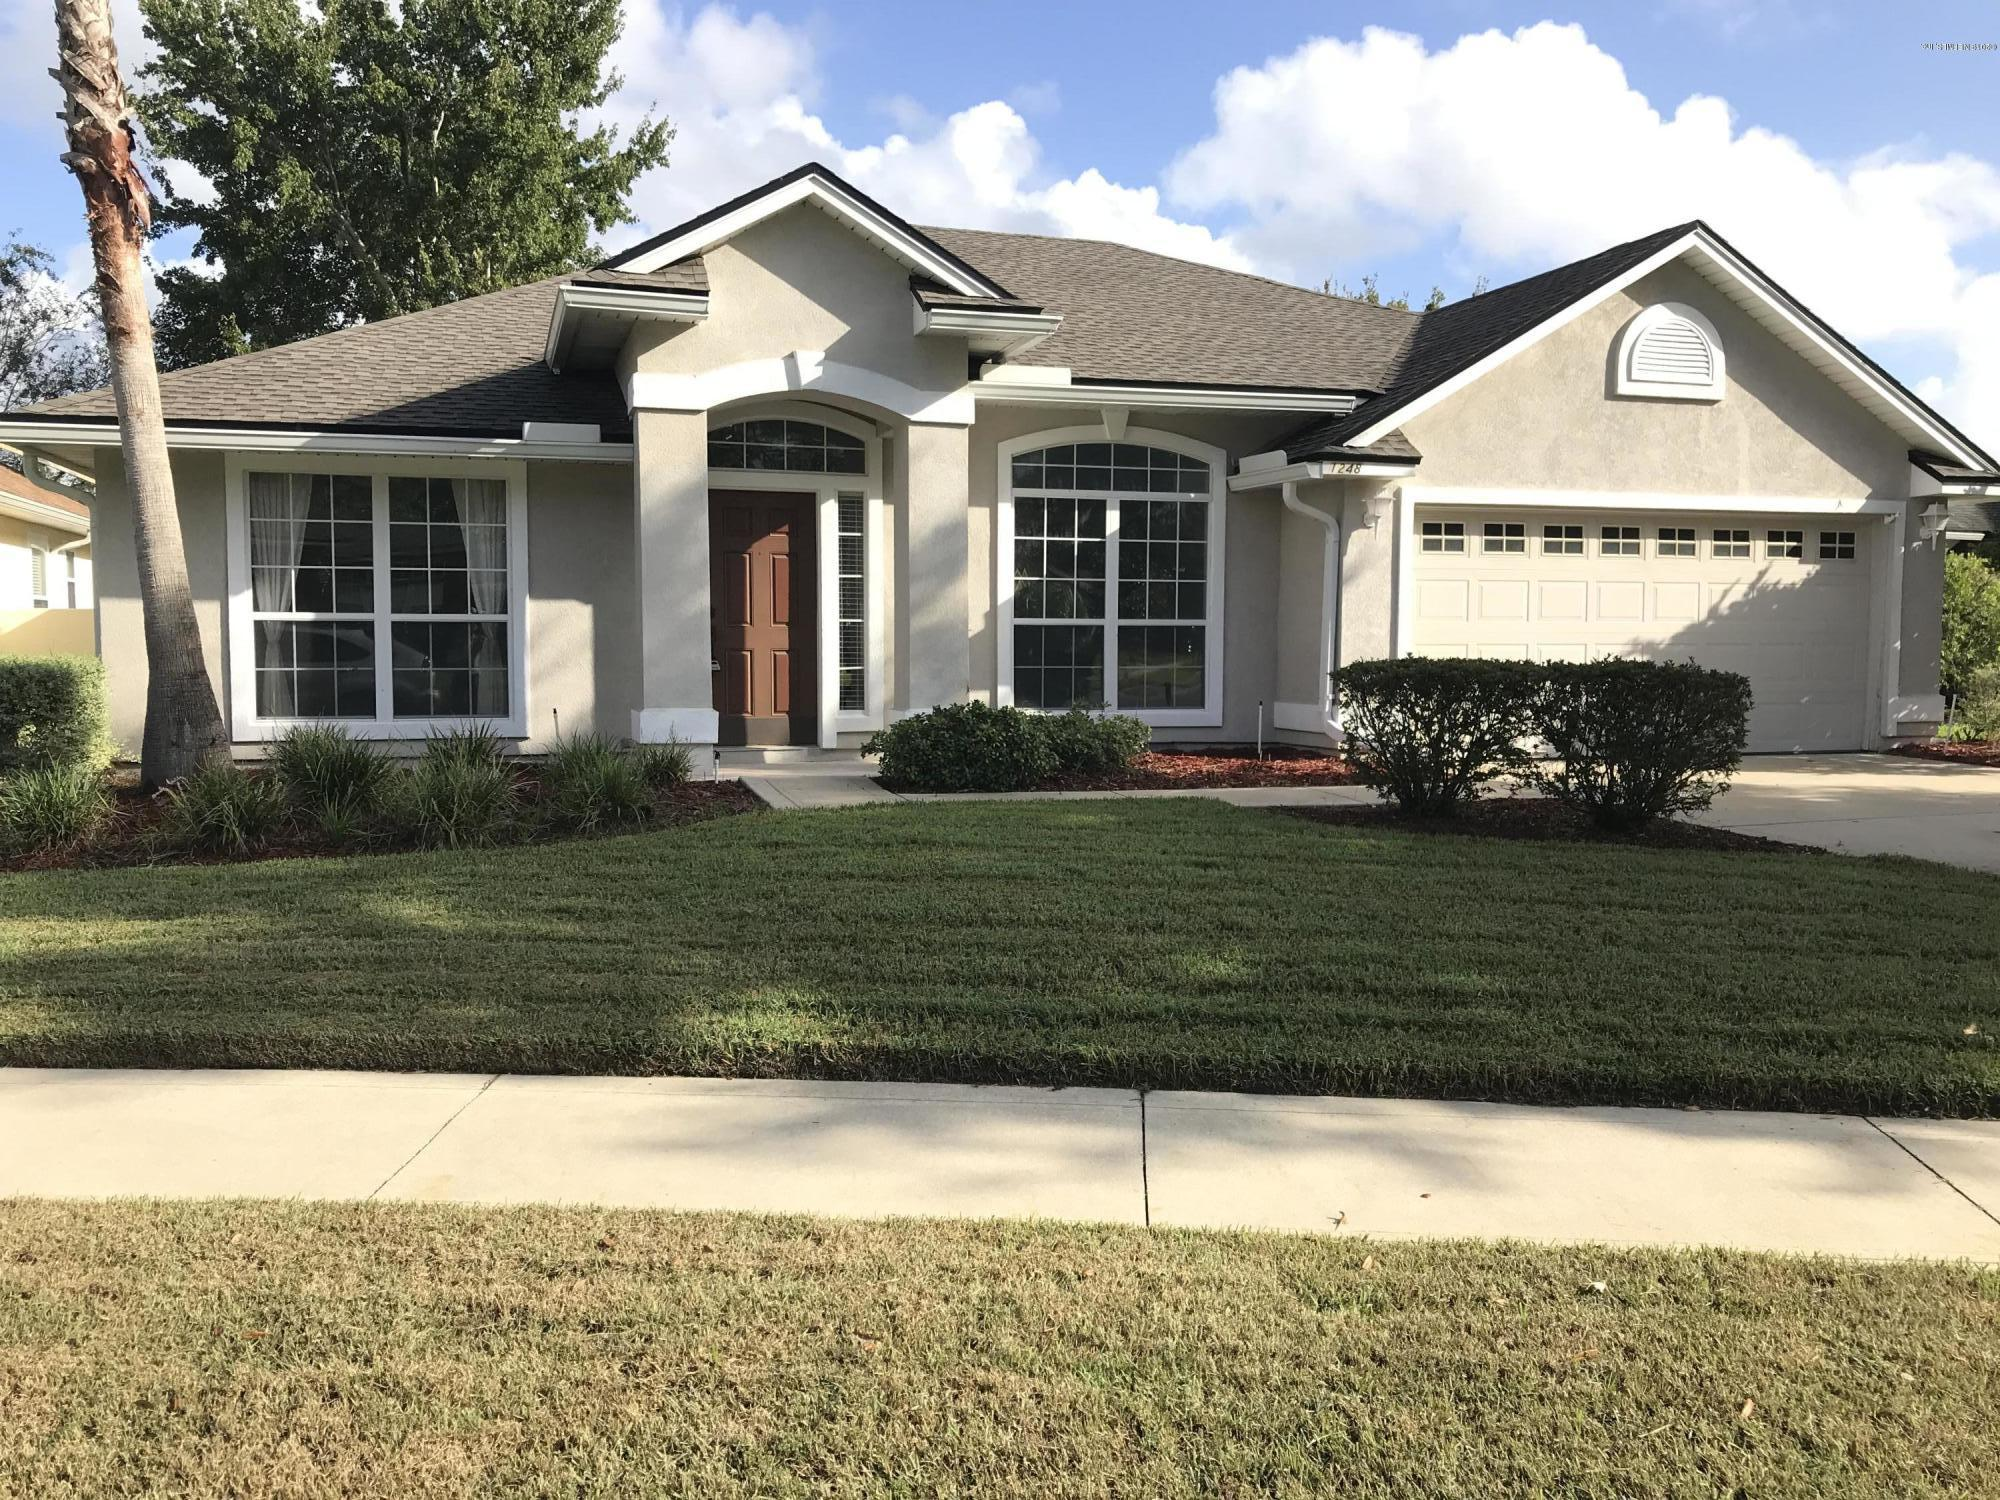 1248 PARADISE POND, ST AUGUSTINE, FLORIDA 32092, 4 Bedrooms Bedrooms, ,2 BathroomsBathrooms,Residential - single family,For sale,PARADISE POND,1014253